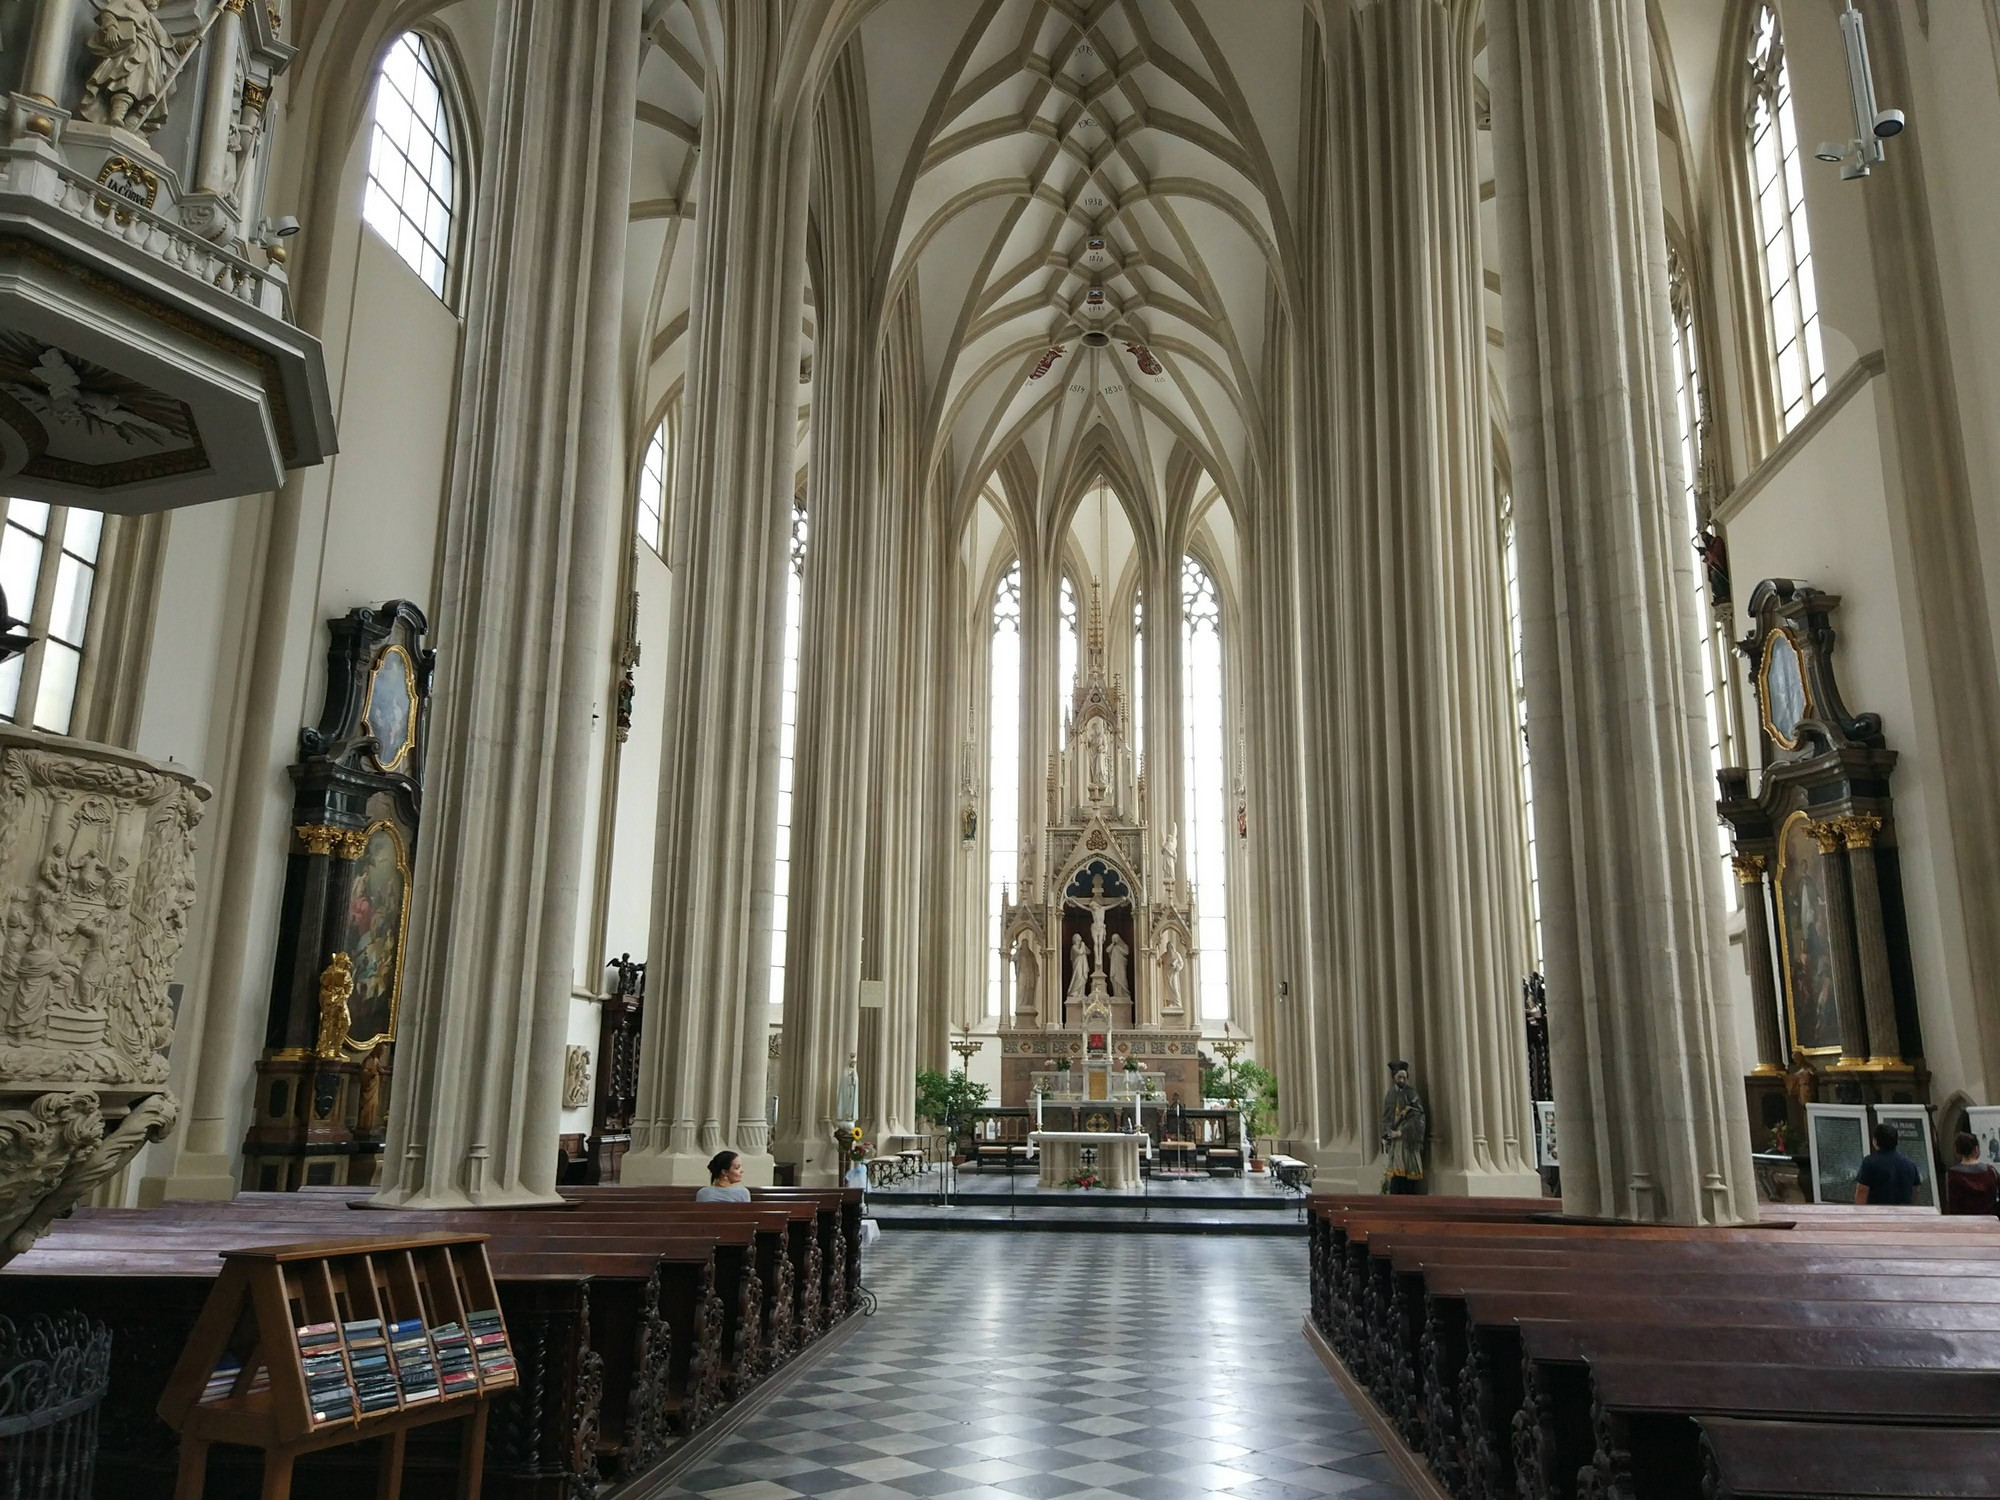 The interior of the Church of St. James in Brno